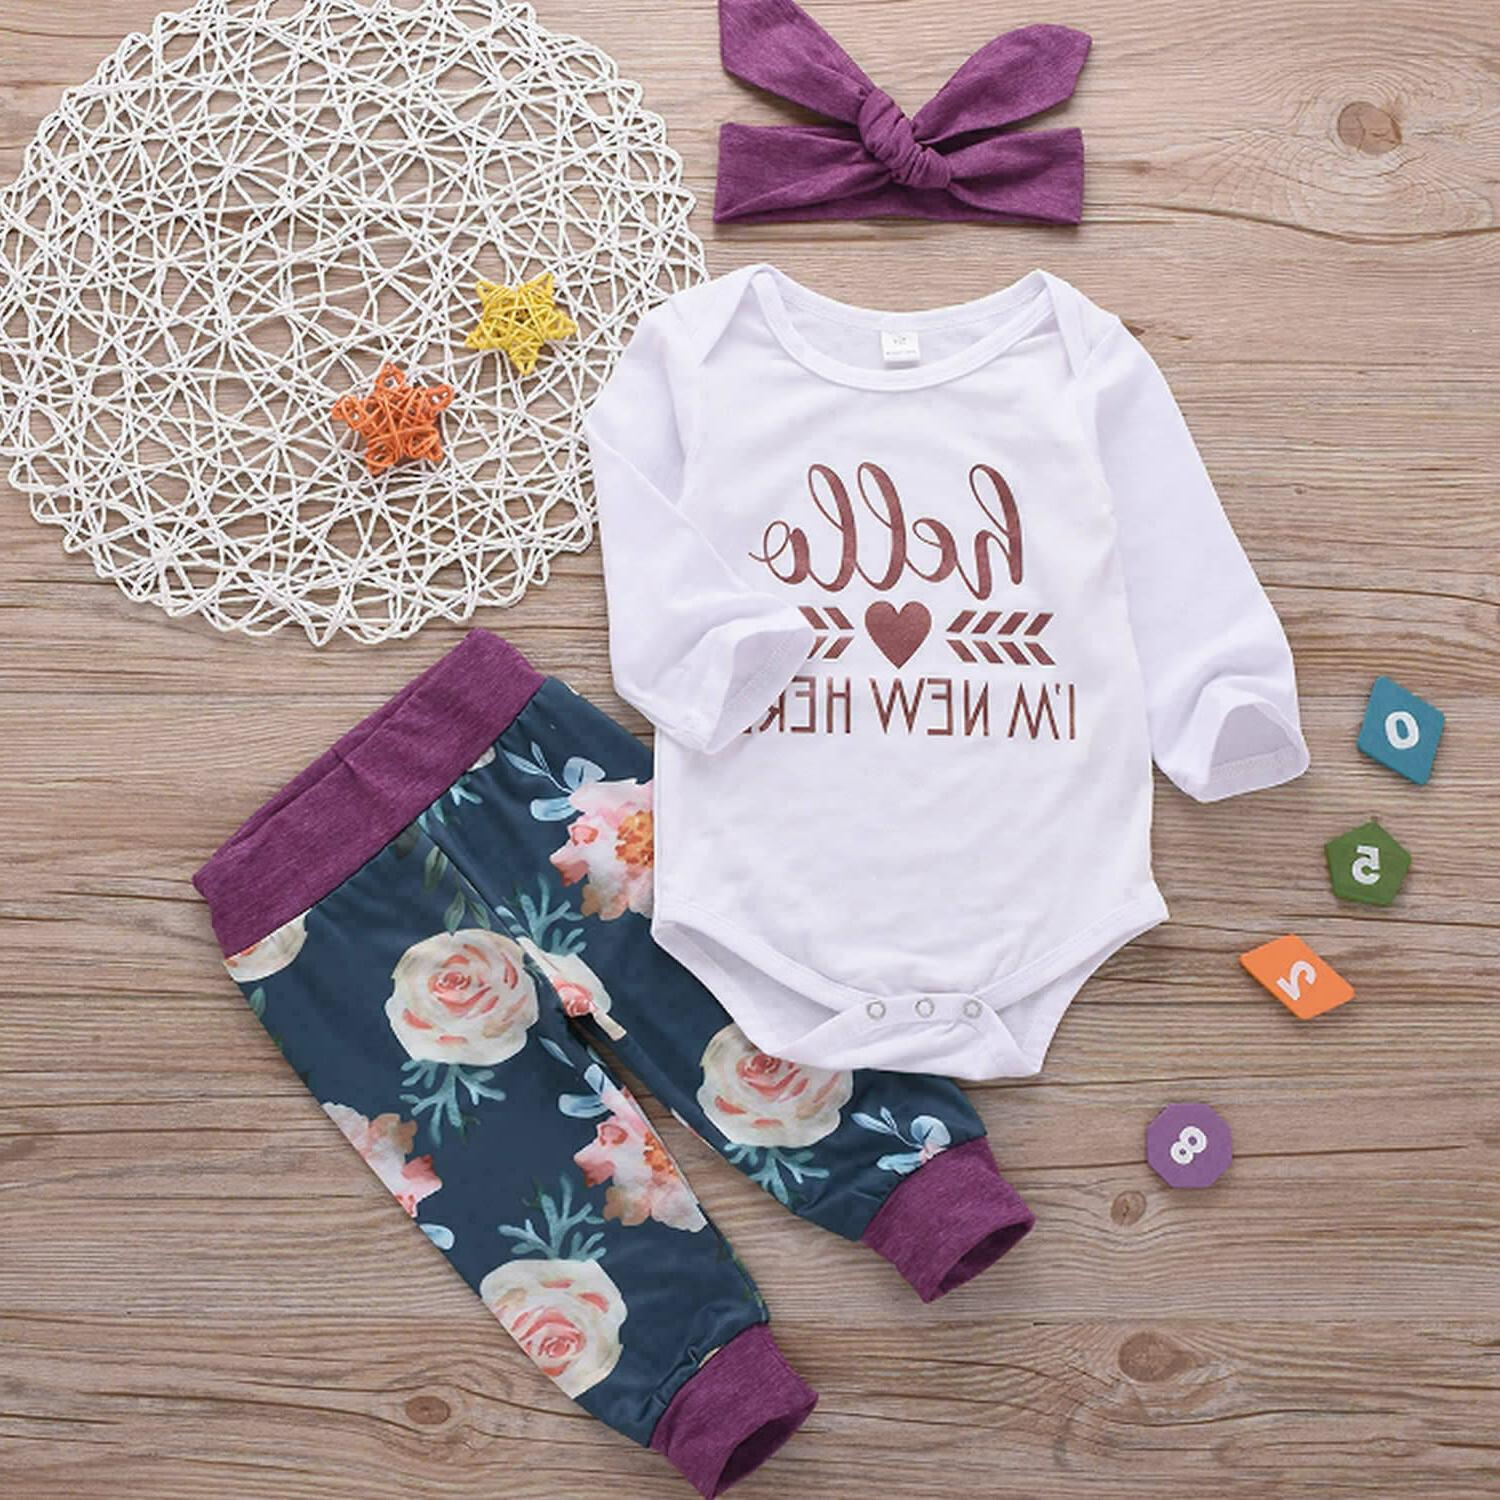 US Newborn Girl Tops Romper Jumpsuit Set